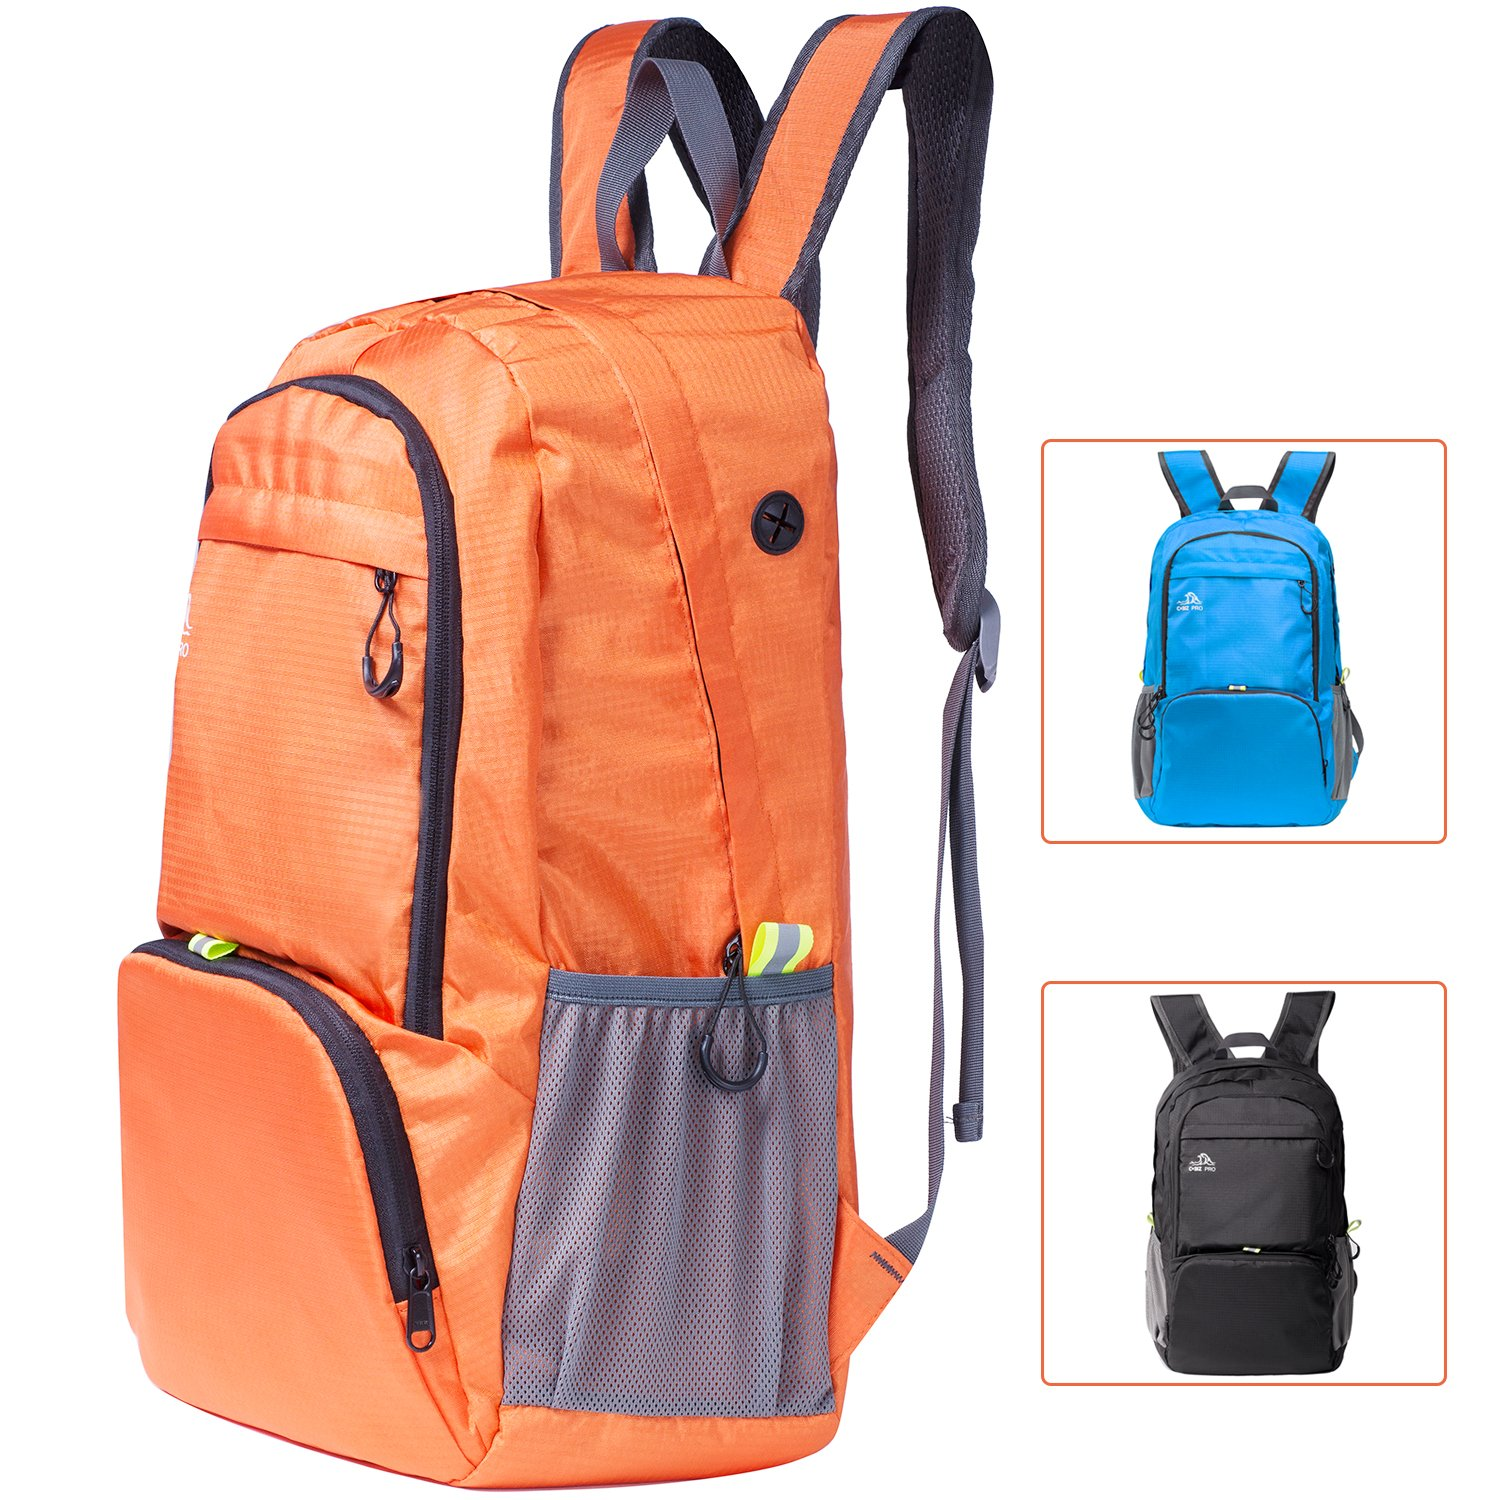 Ultralight Travel Backpack,Cobiz 30L Water Resistant Roomy Foldable Latop Hiking Camping Daypack for Women Kids -Built in Safety Pocket and Headphone Jack (Orange)